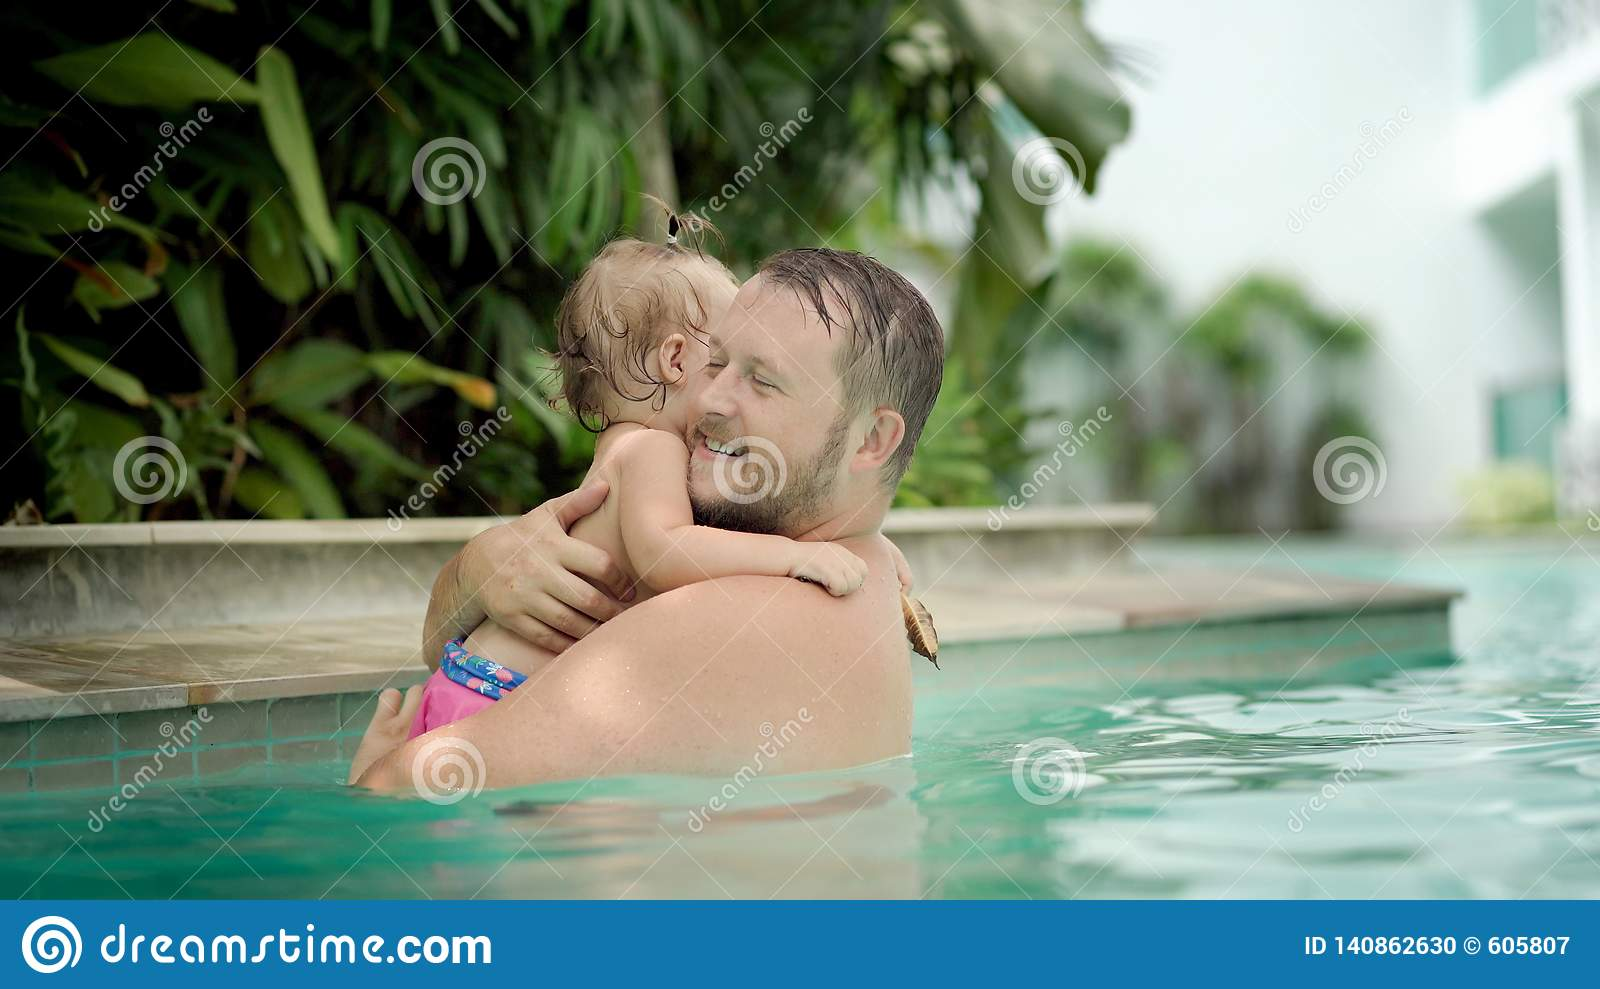 Cute little kid and his father having a swimming lesson in the pool. Father holds daughter in his arms and hugs.